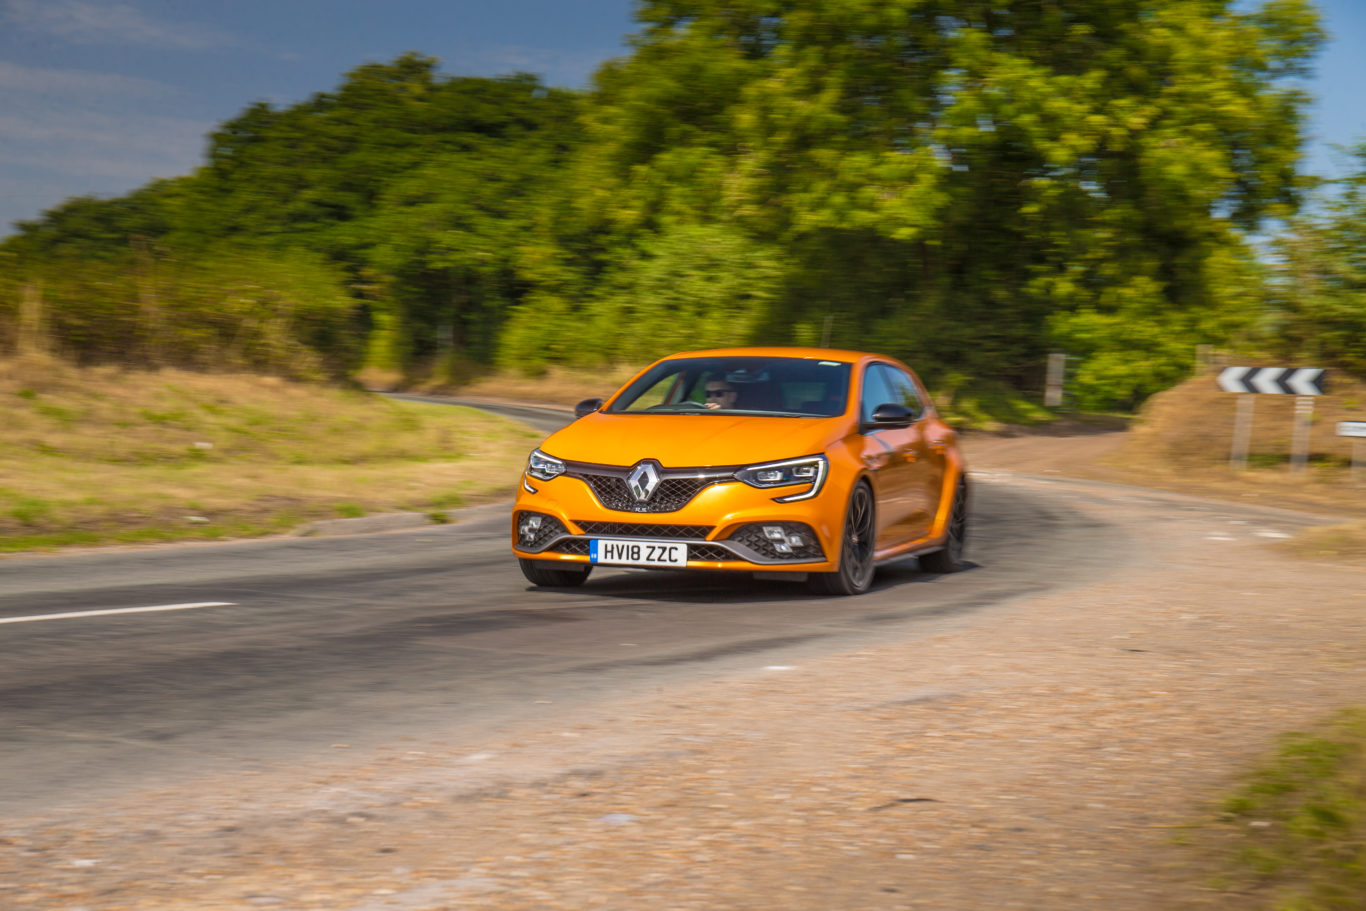 The Megane's all-wheel-steer system aids cornering